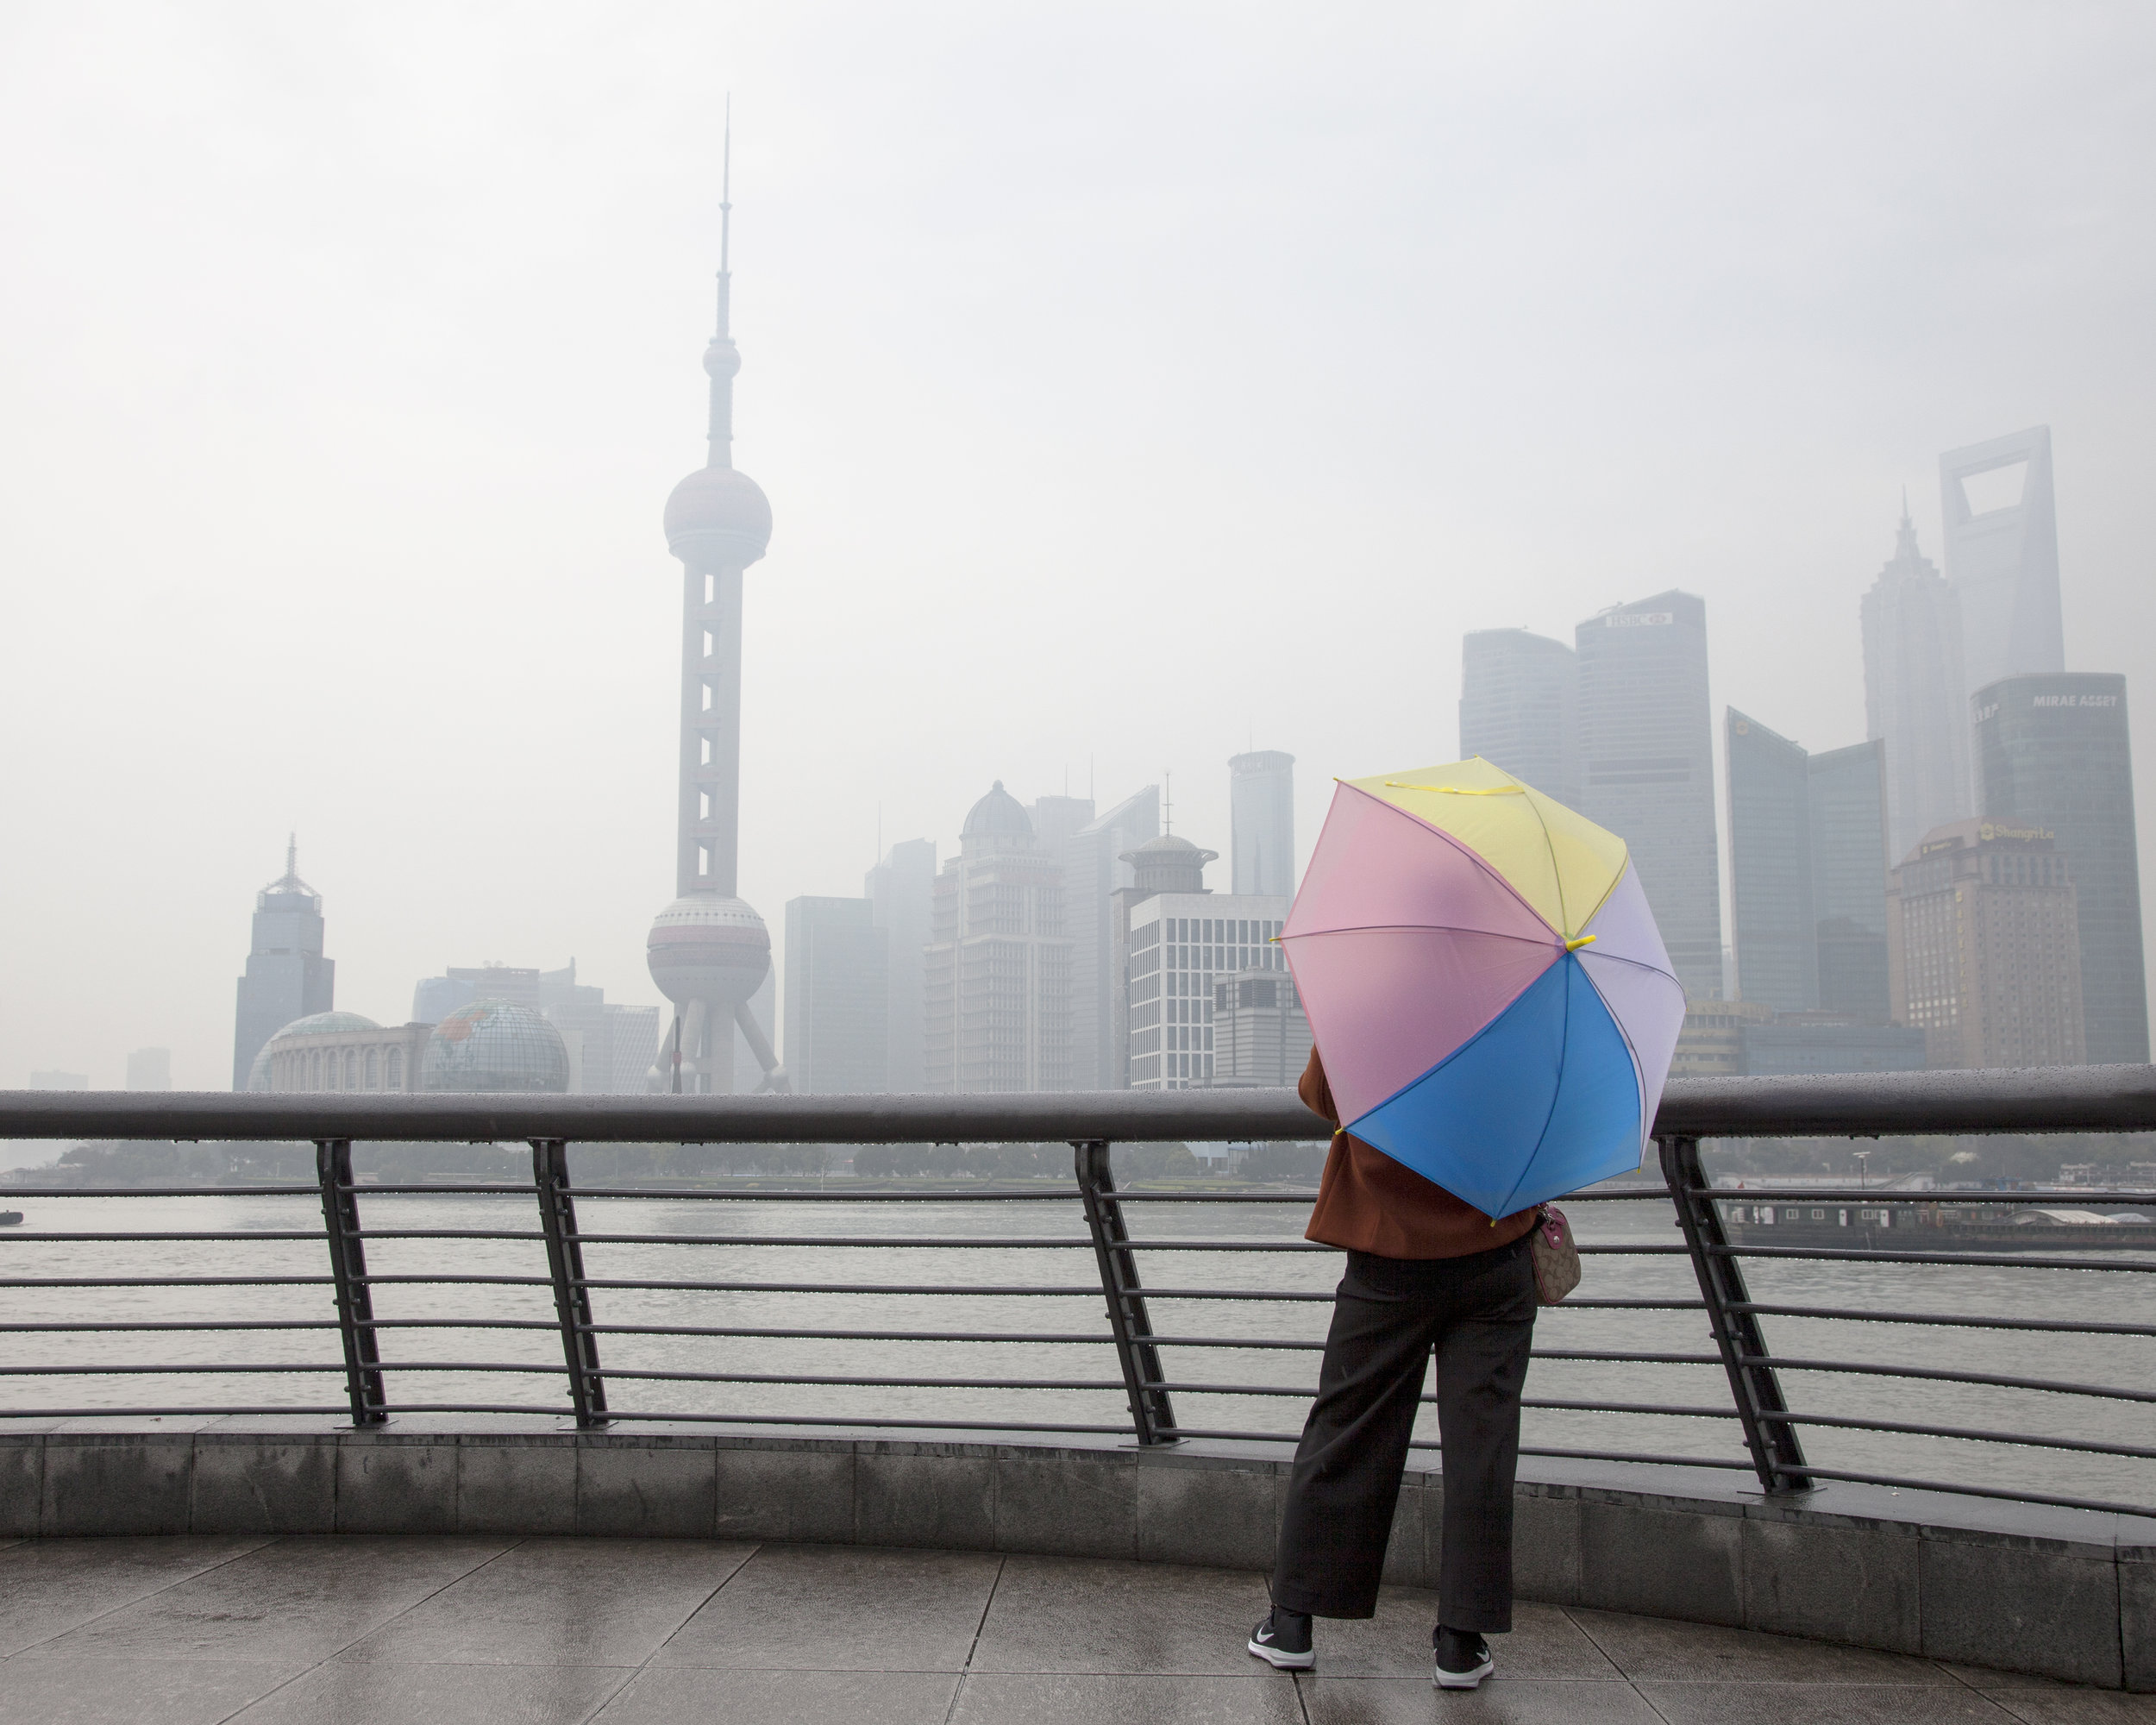 Rainy day at The Bund